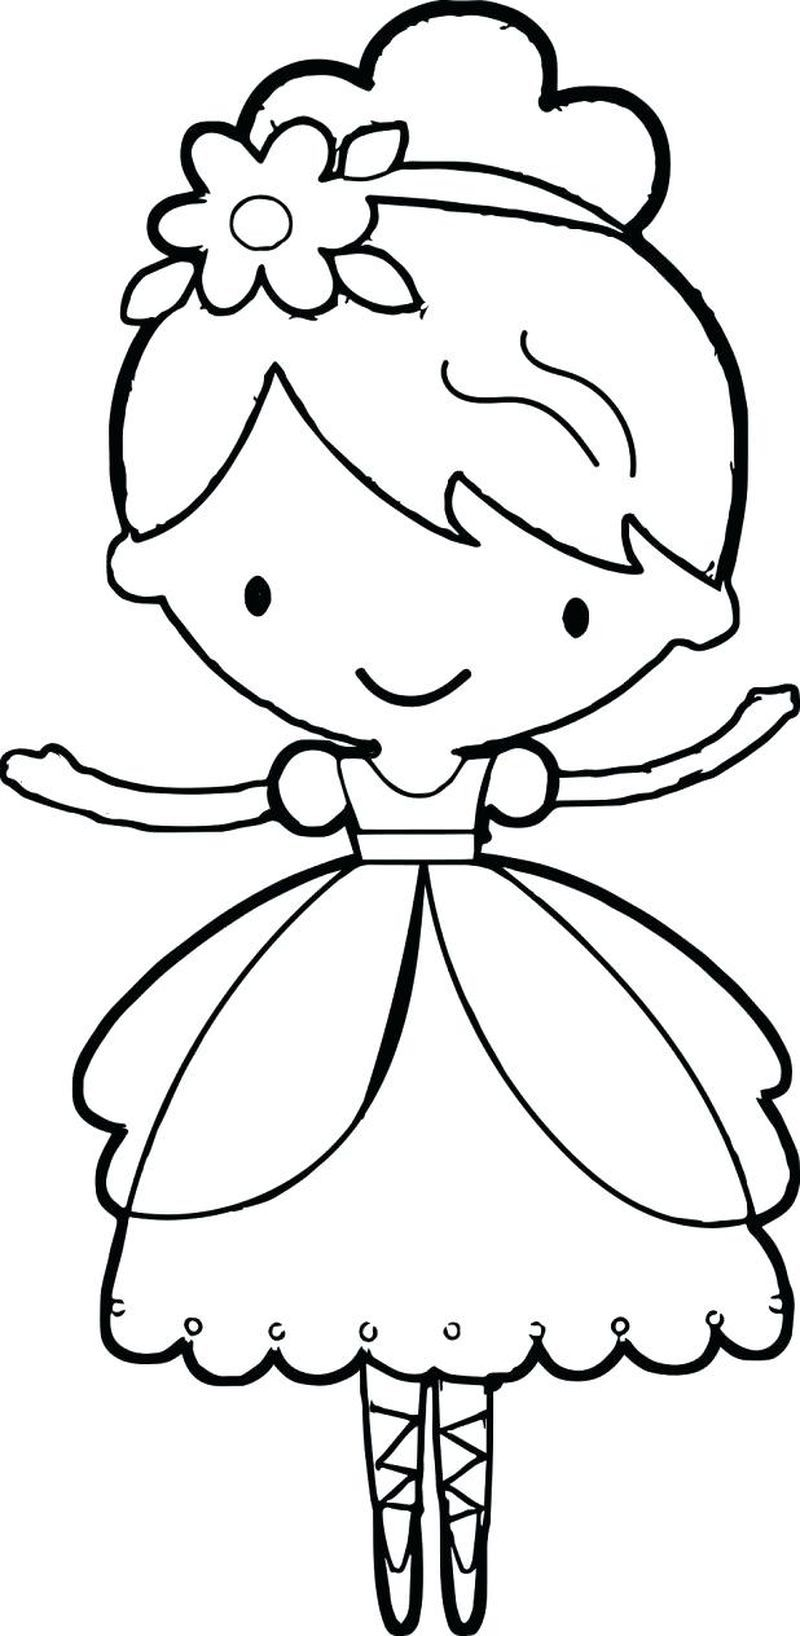 Cute Ballerina Coloring Pages Ideas Free Coloring Sheets Ballerina Coloring Pages Dance Coloring Pages Hello Kitty Colouring Pages